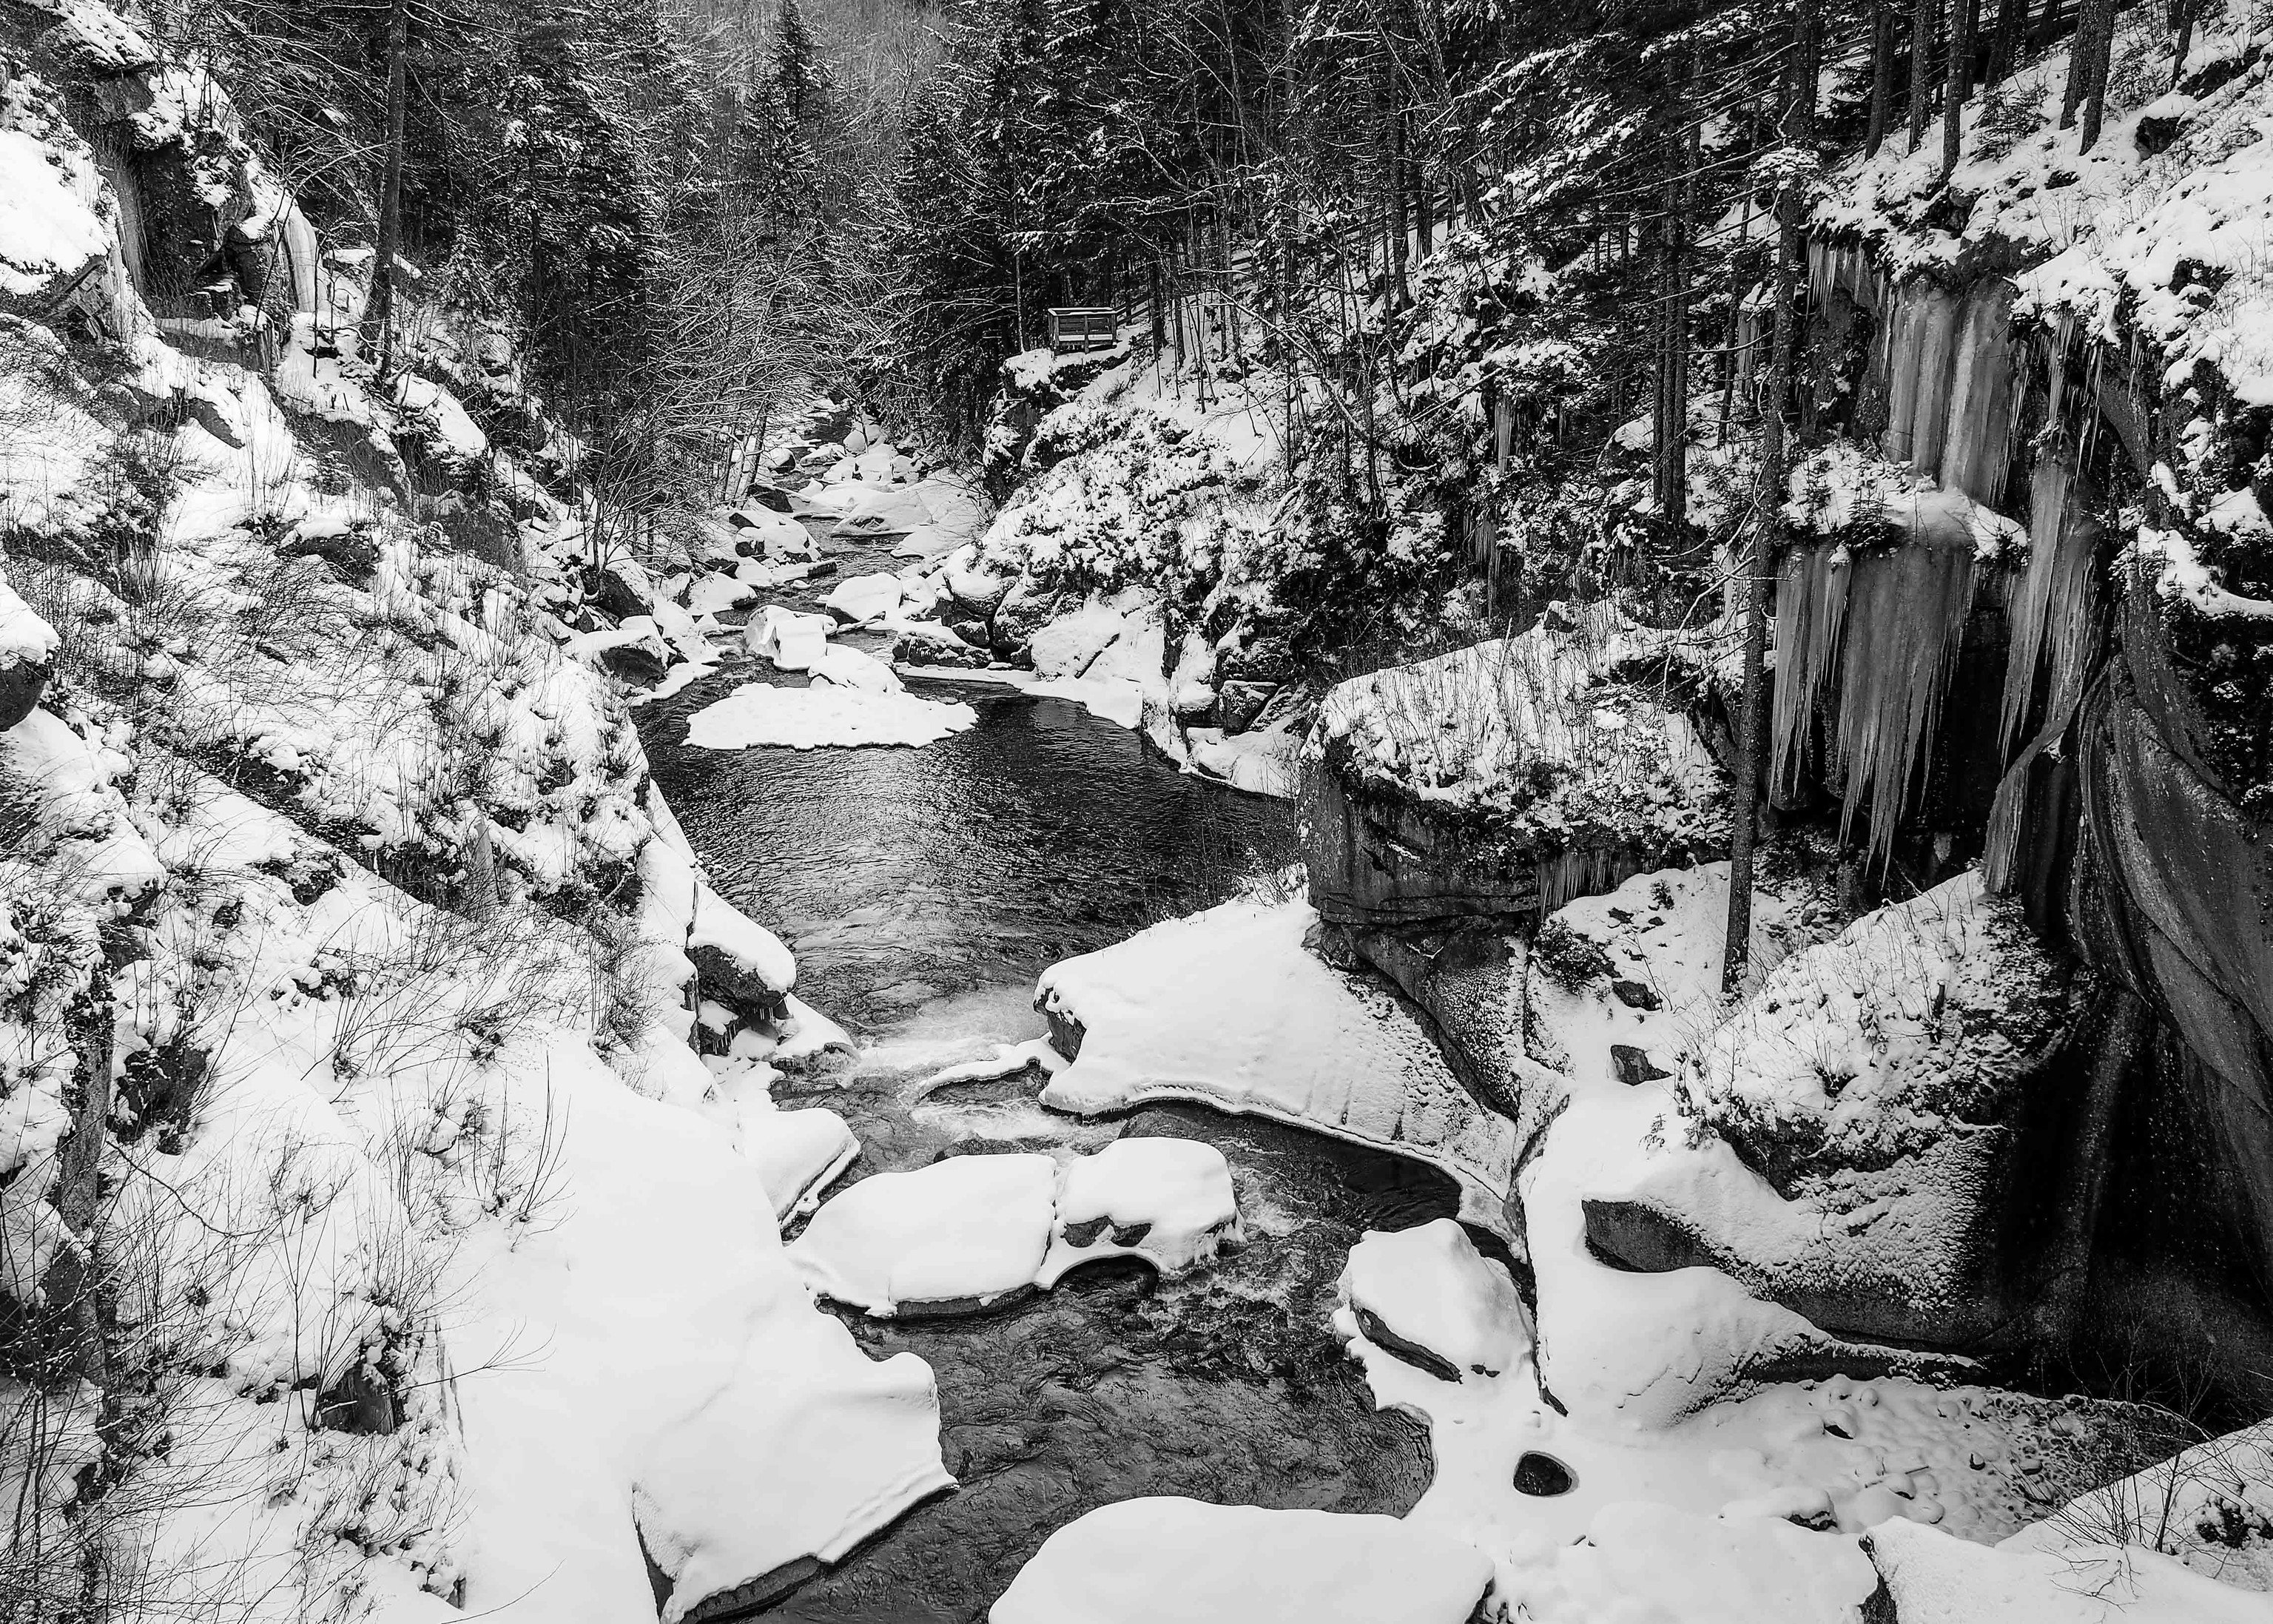 alpine skiing East Coast USA Trip Ideas tree outdoor water snow Nature Winter black and white freezing monochrome photography leaf stream geological phenomenon reflection monochrome watercourse ice rock landscape geology woodland Forest plant conifer fluvial landforms of streams creek River branch